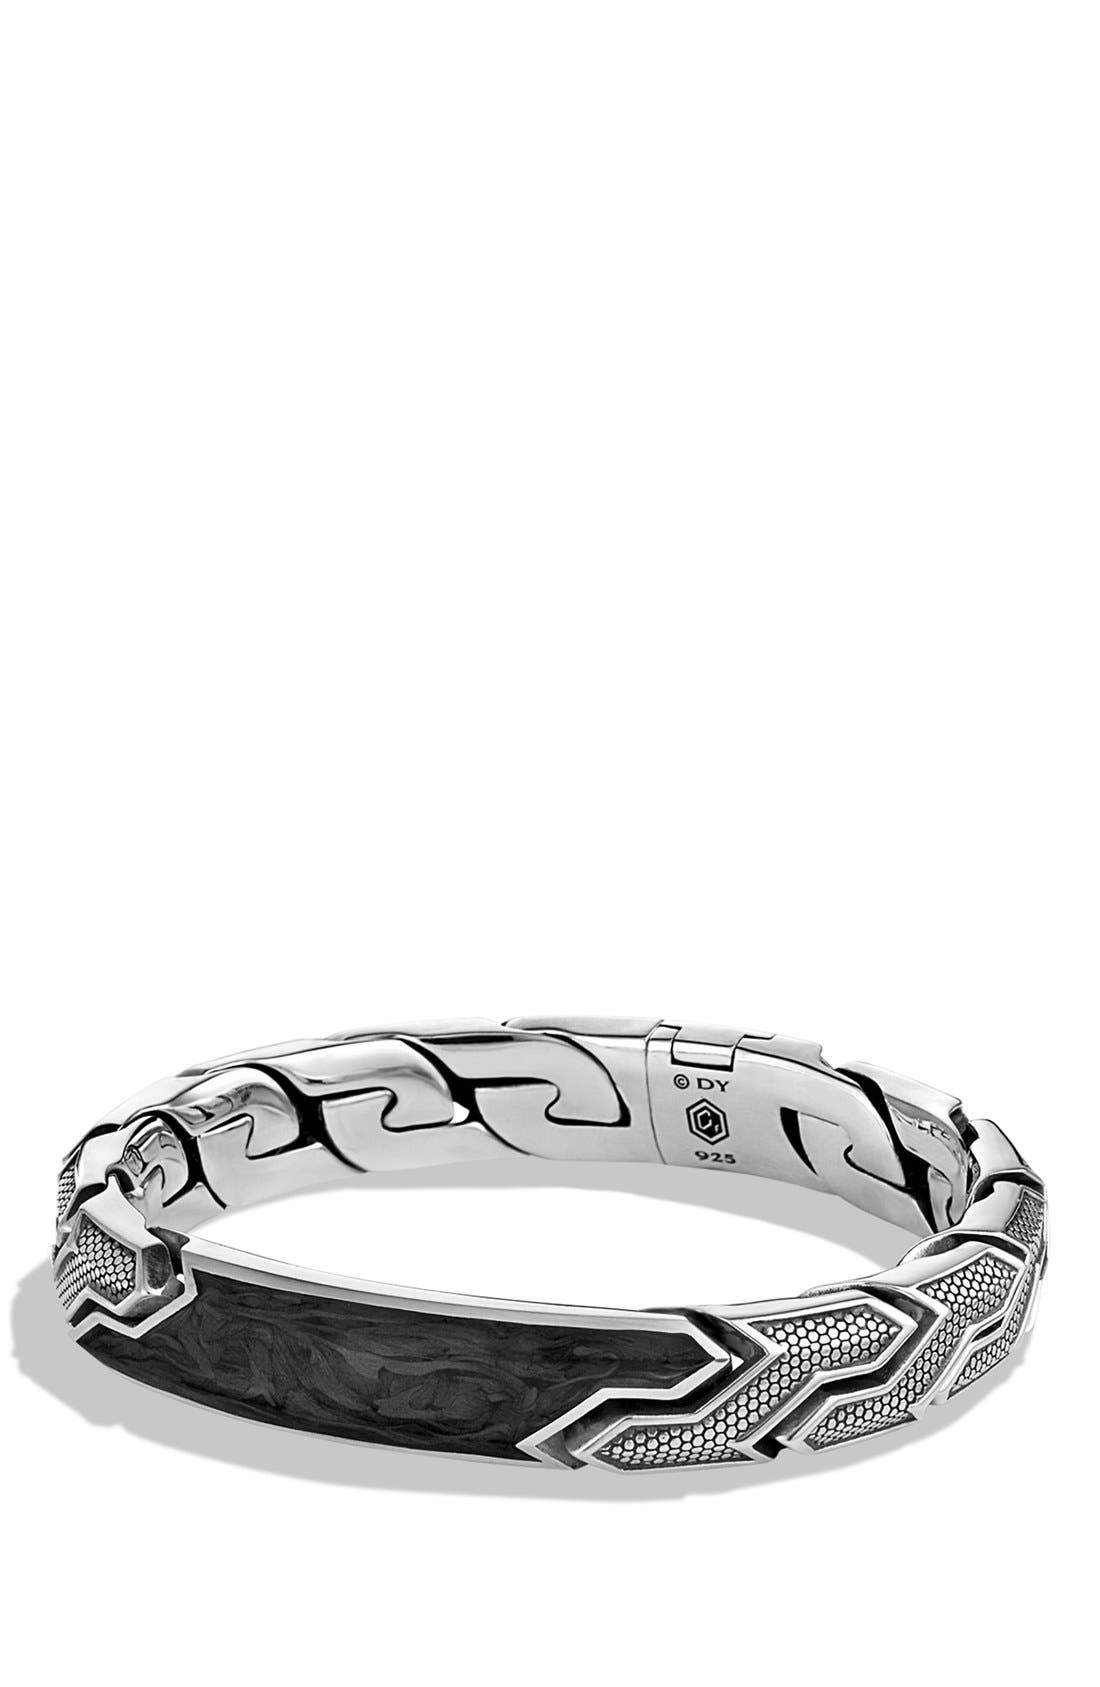 Forged Carbon ID Bracelet,                         Main,                         color, Forged Carbon